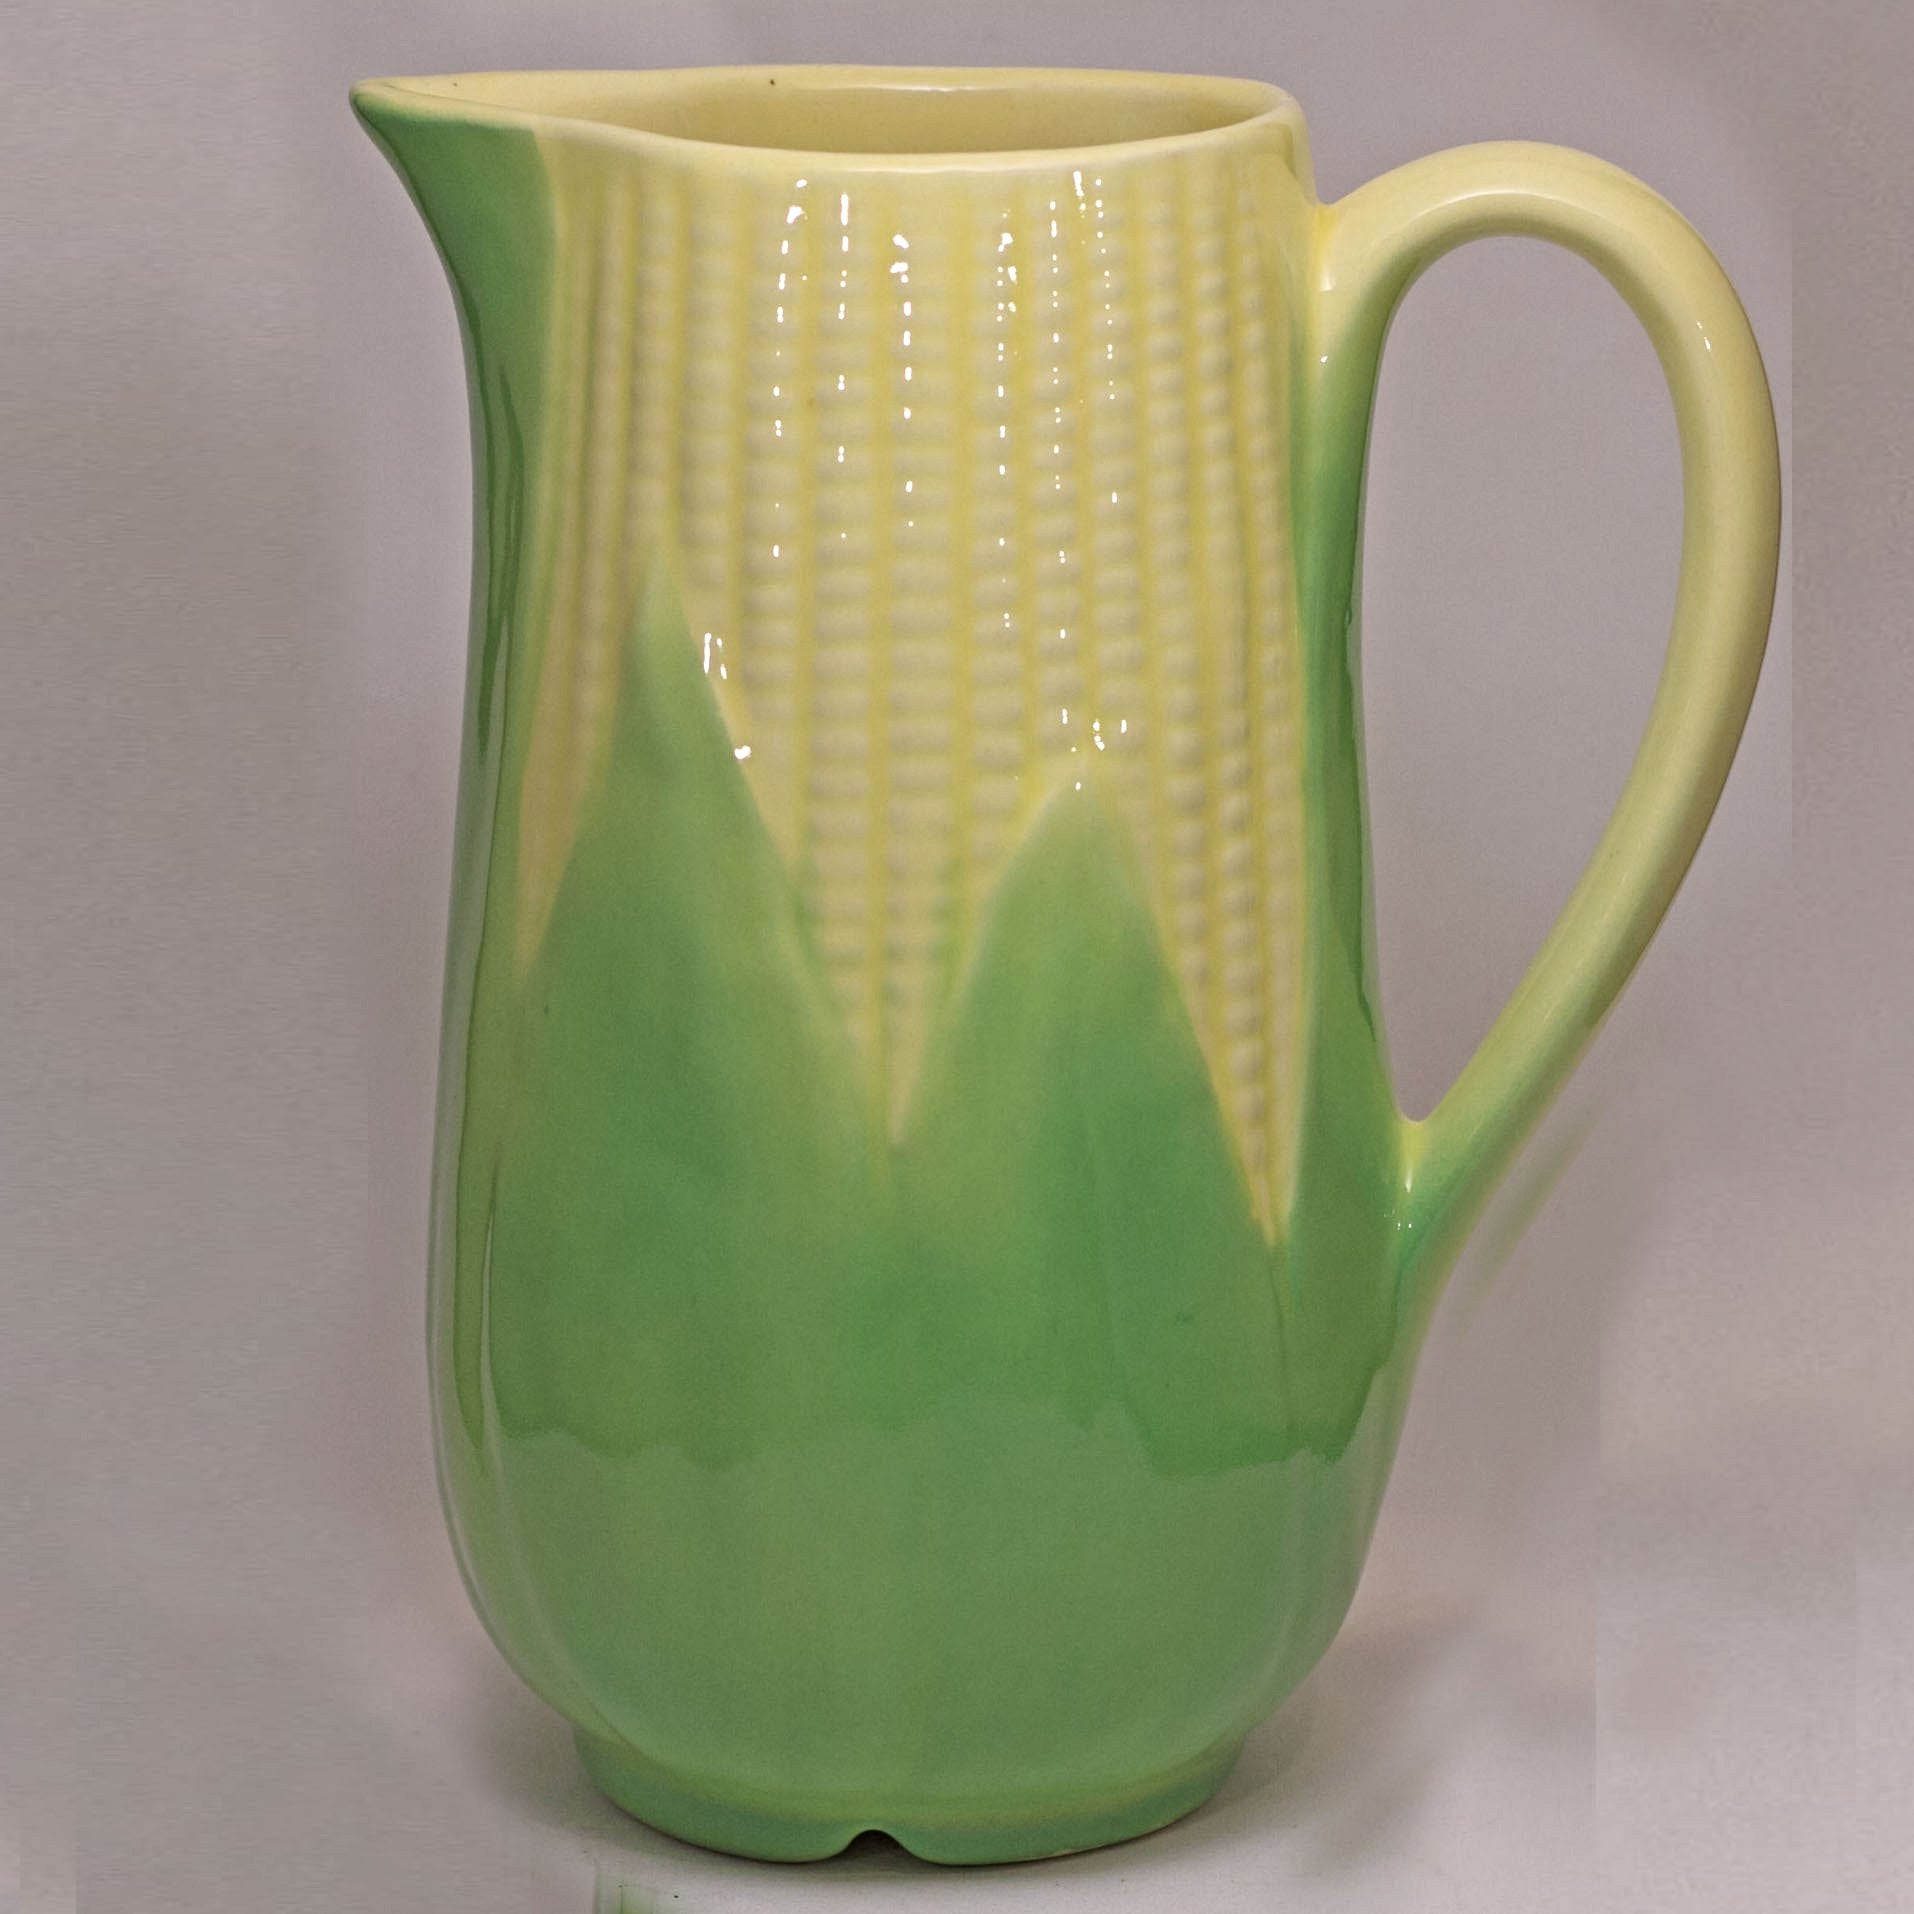 SHAWNEE Pottery CORN KING Pitcher